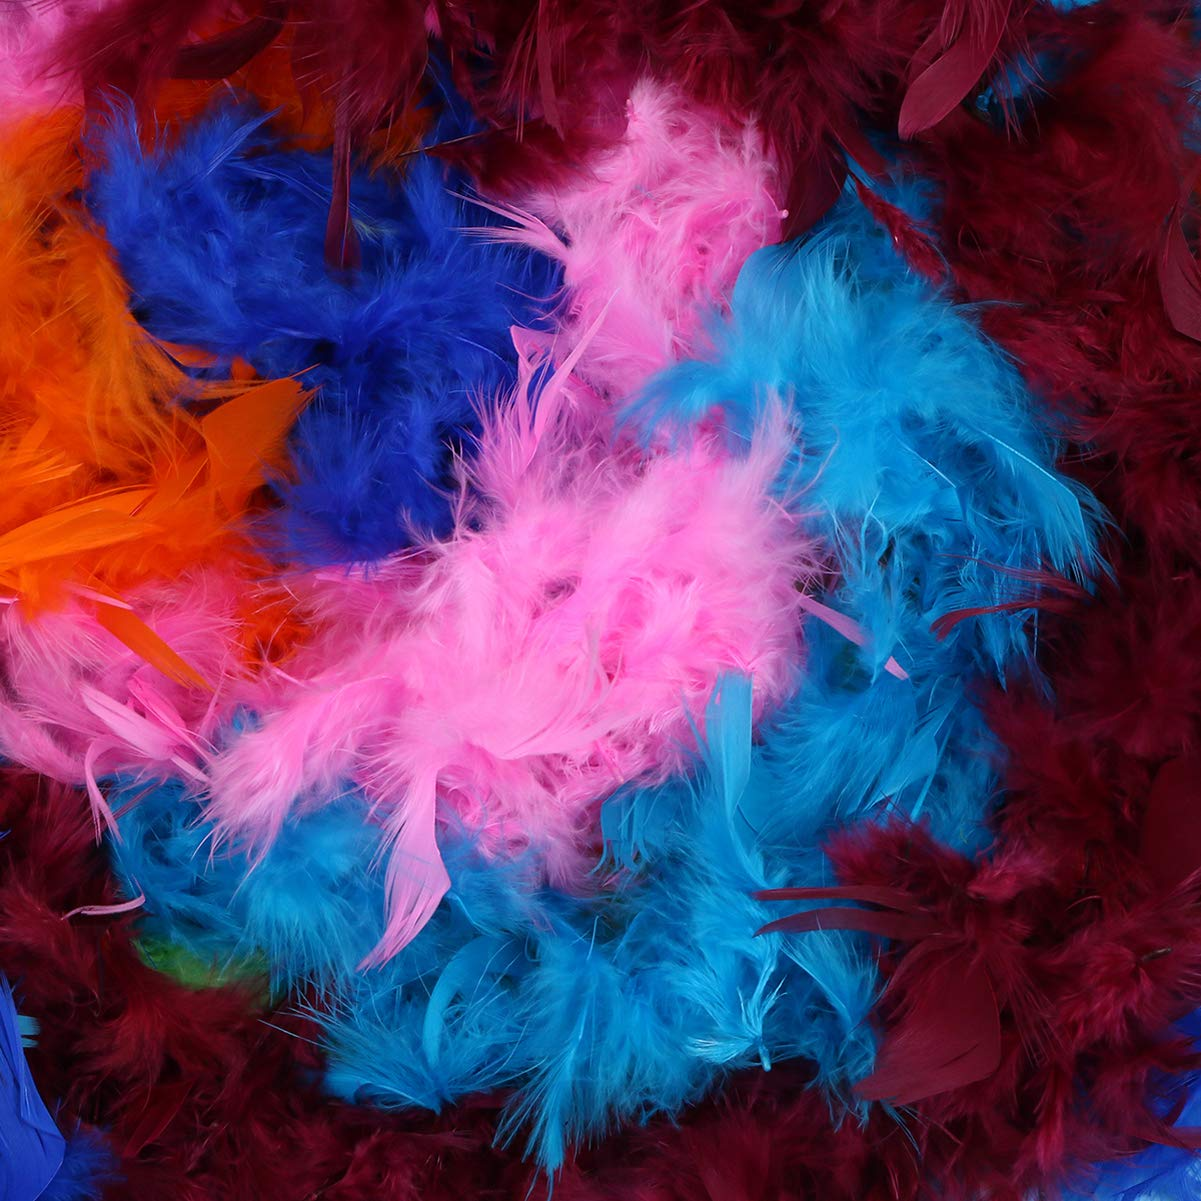 SUPVOX 6 PCs Feather Boa Set Rainbow Feather Boas Vibrant Colorful Feathers for Wedding Costumes Mardi Gras Party Favors Supplies 40g